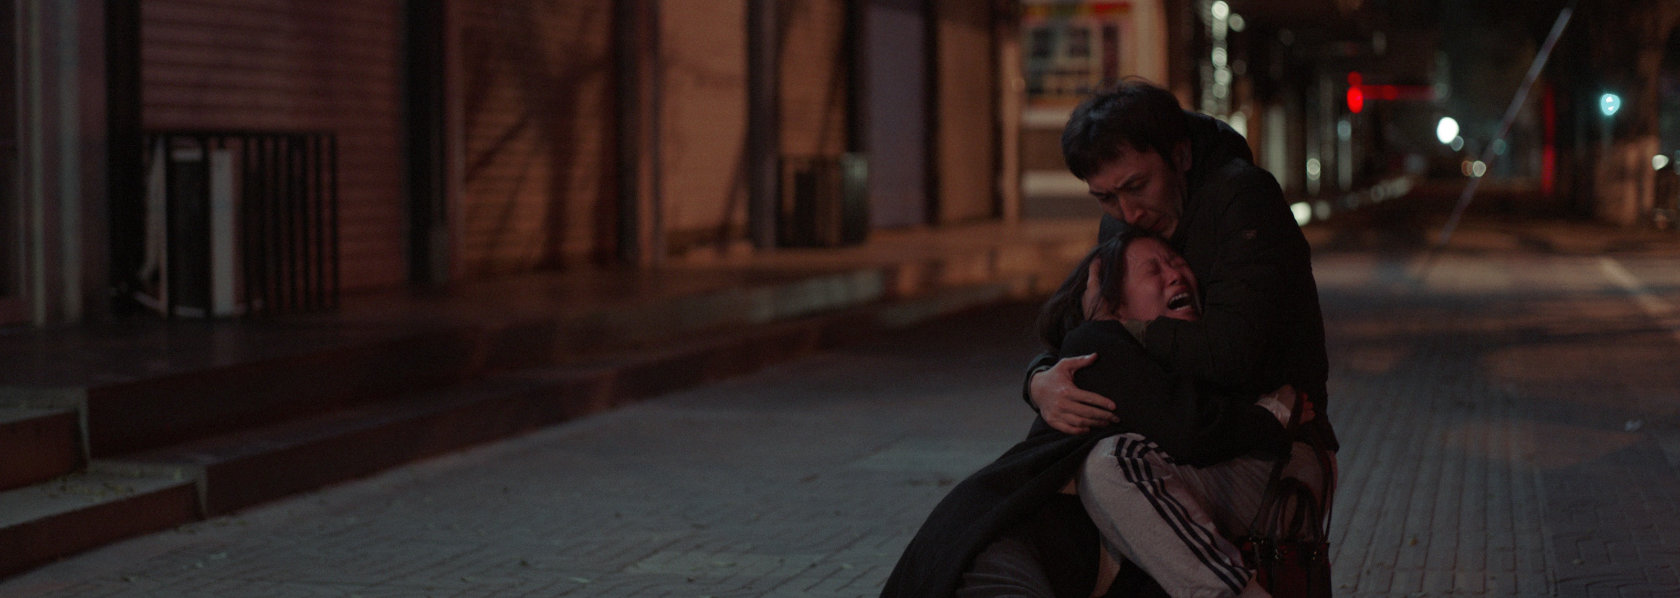 A man kneeling on the floor hugging a wailing woman in the street - Lost Lotus - THIS Buddhist Film Festival